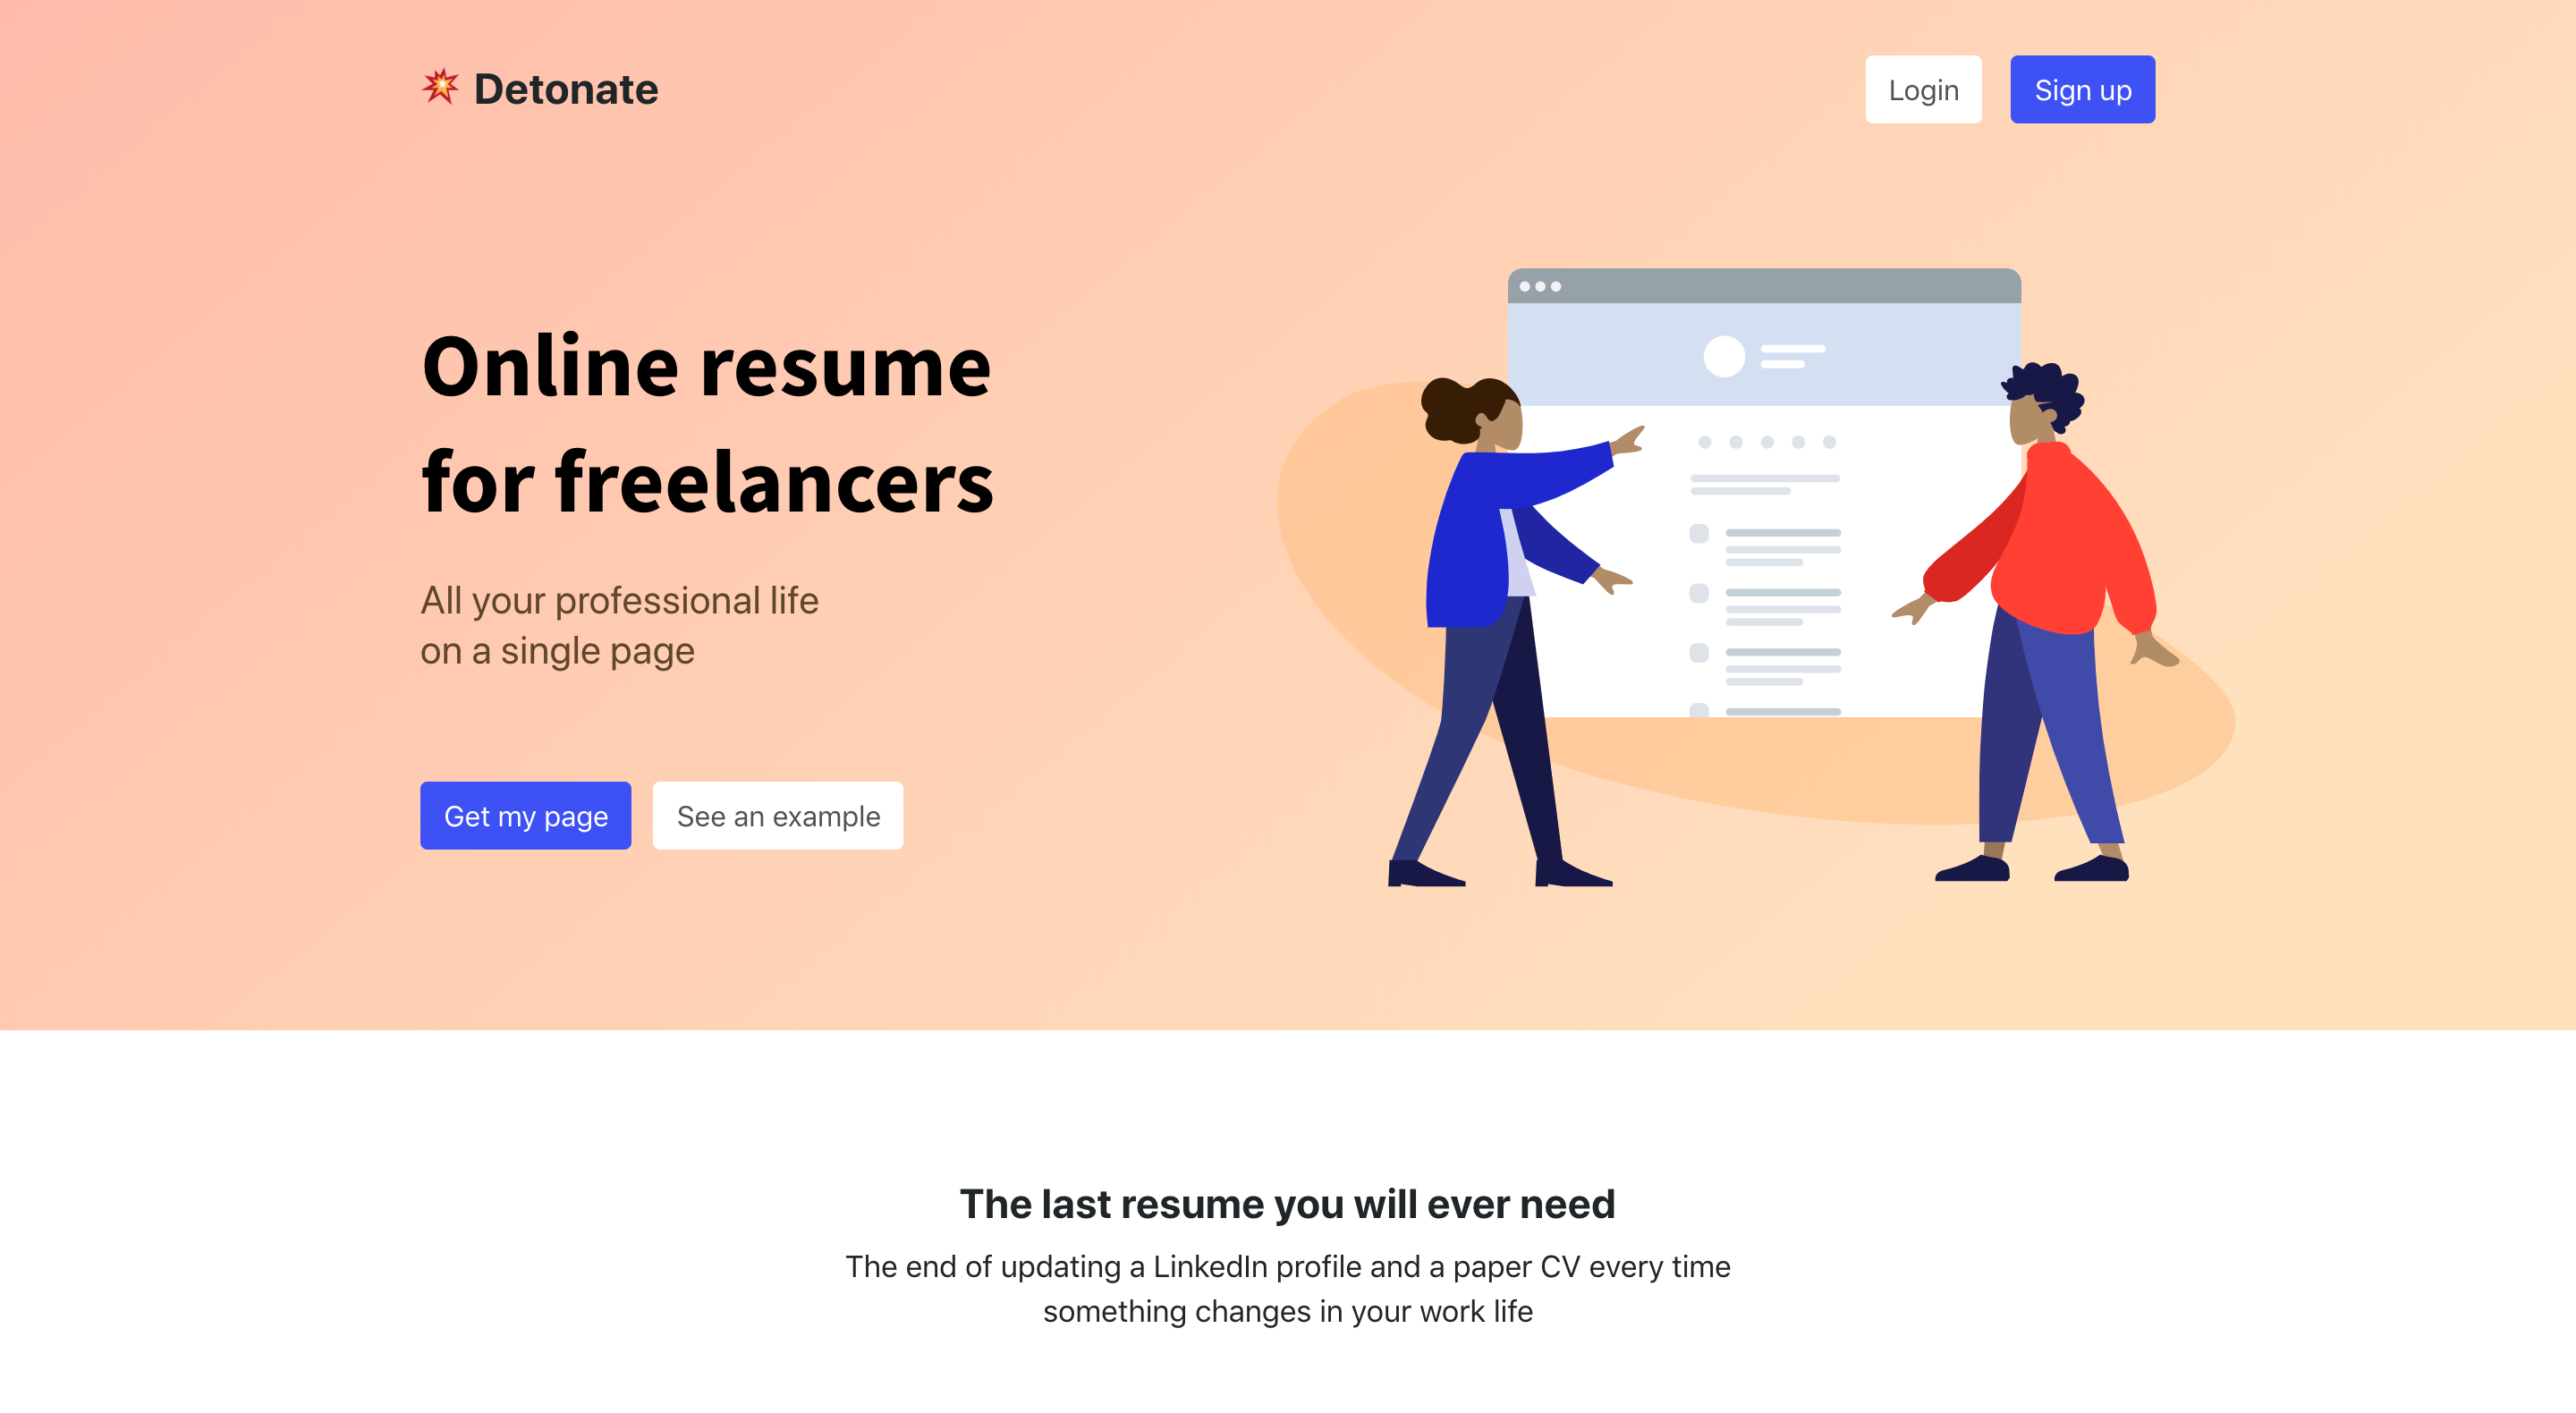 Detonate - Online resume for freelancers